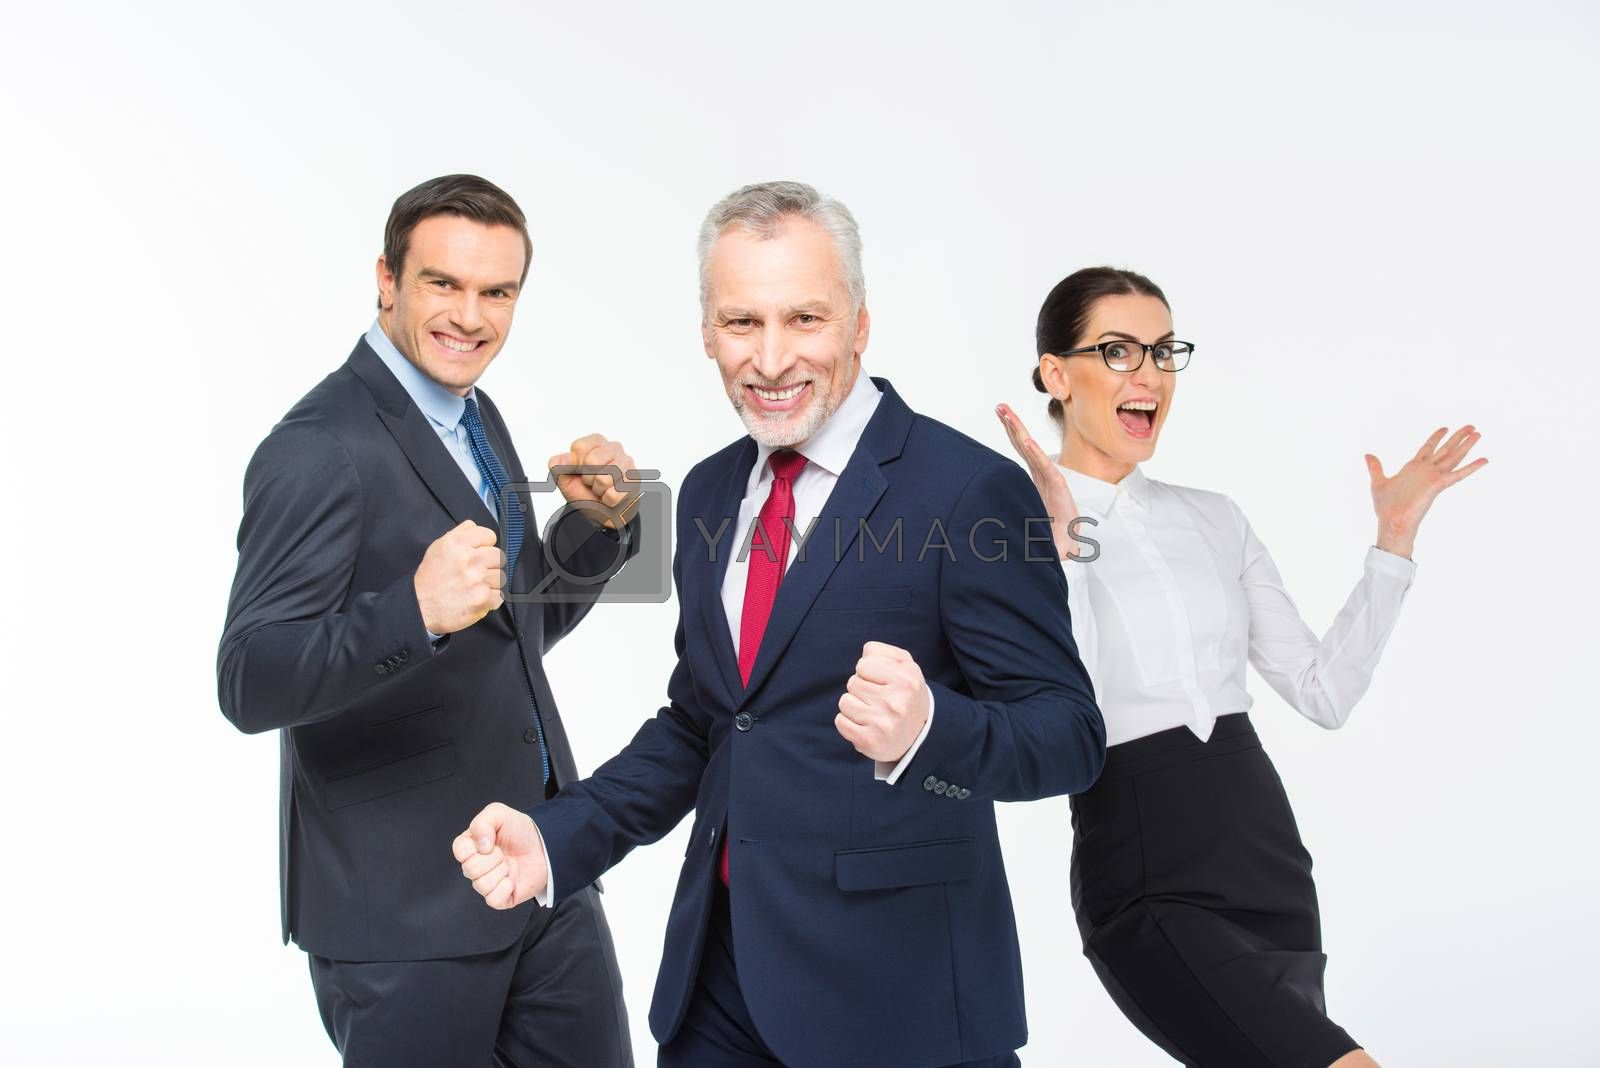 Three happy business people celebrating on white